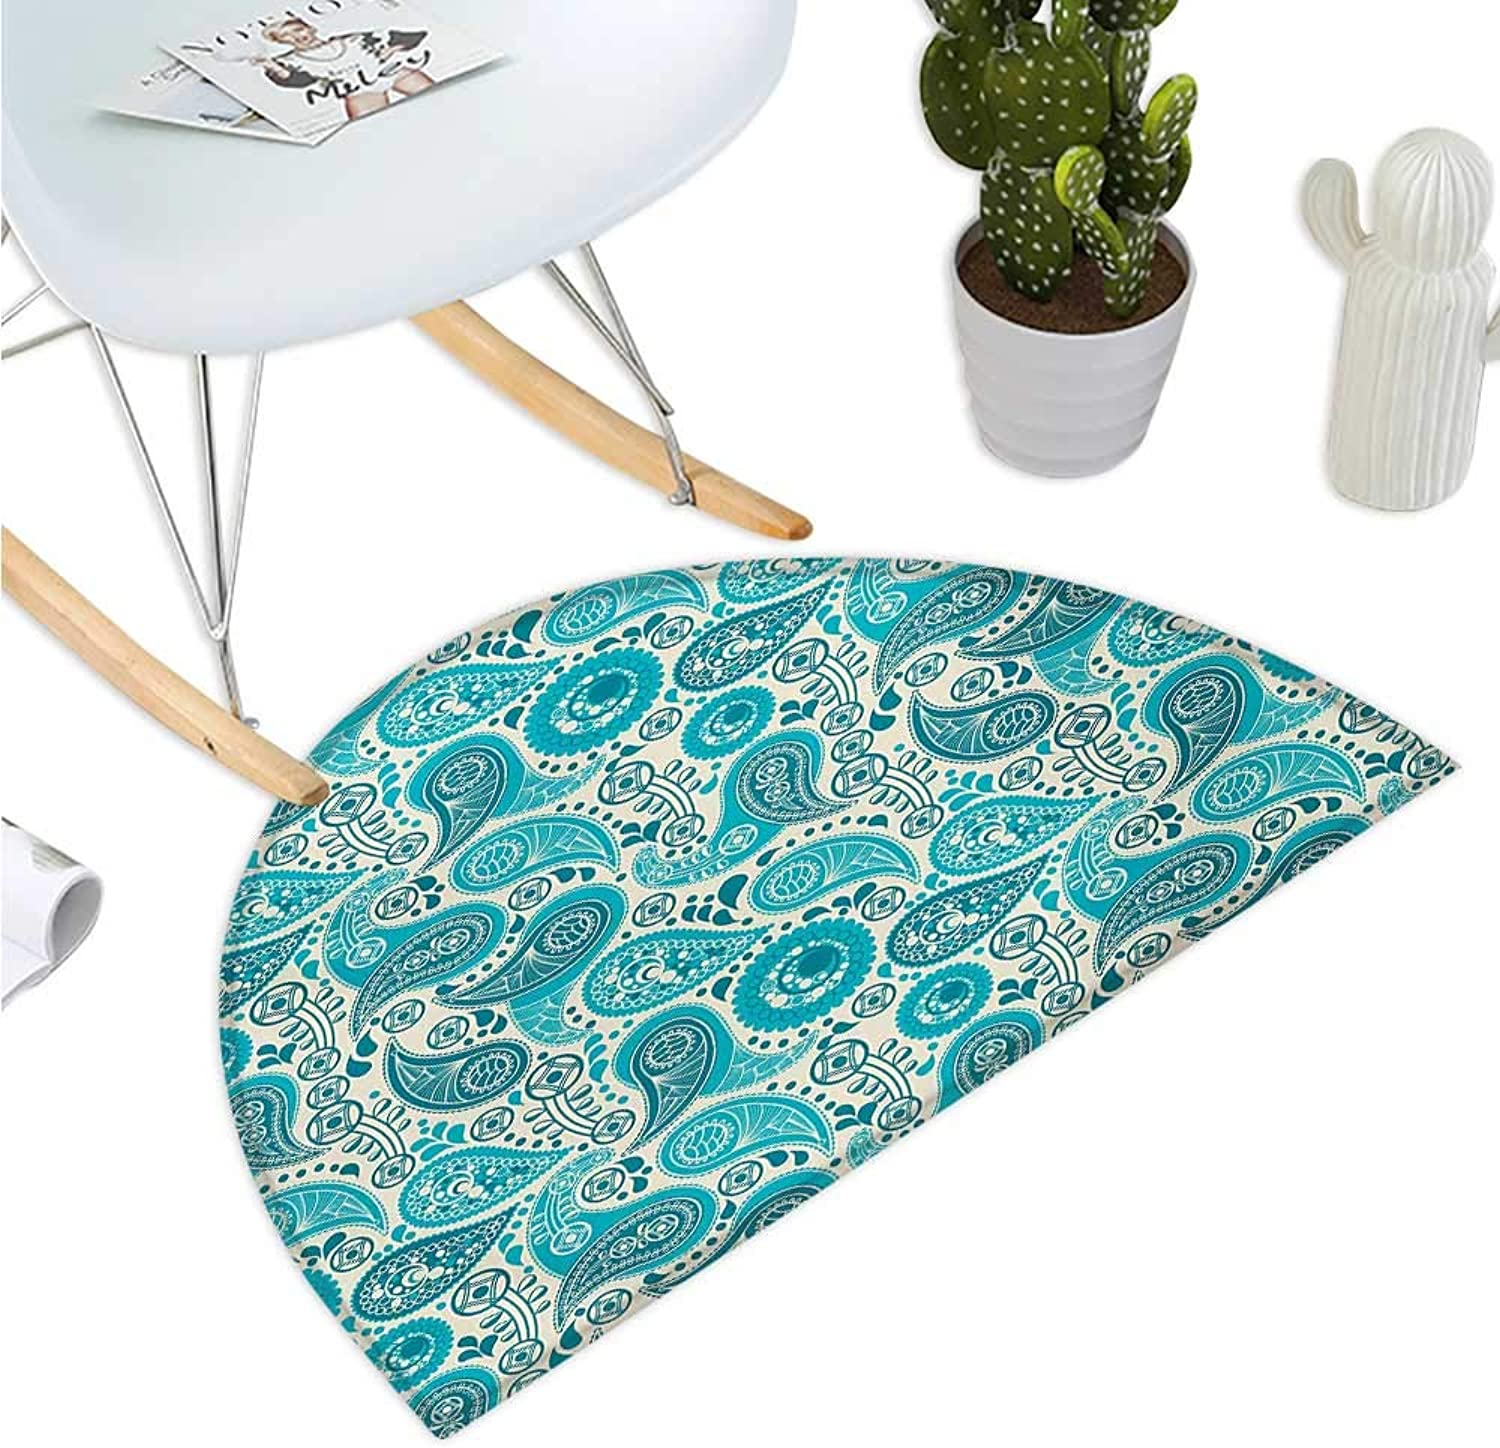 Turquoise Semicircular Cushion Paisley Pattern Antique Floral Pattern Ornaments Stylized Classical Middle Eastern Bathroom Mat H 39.3  xD 59  Aqua Teal